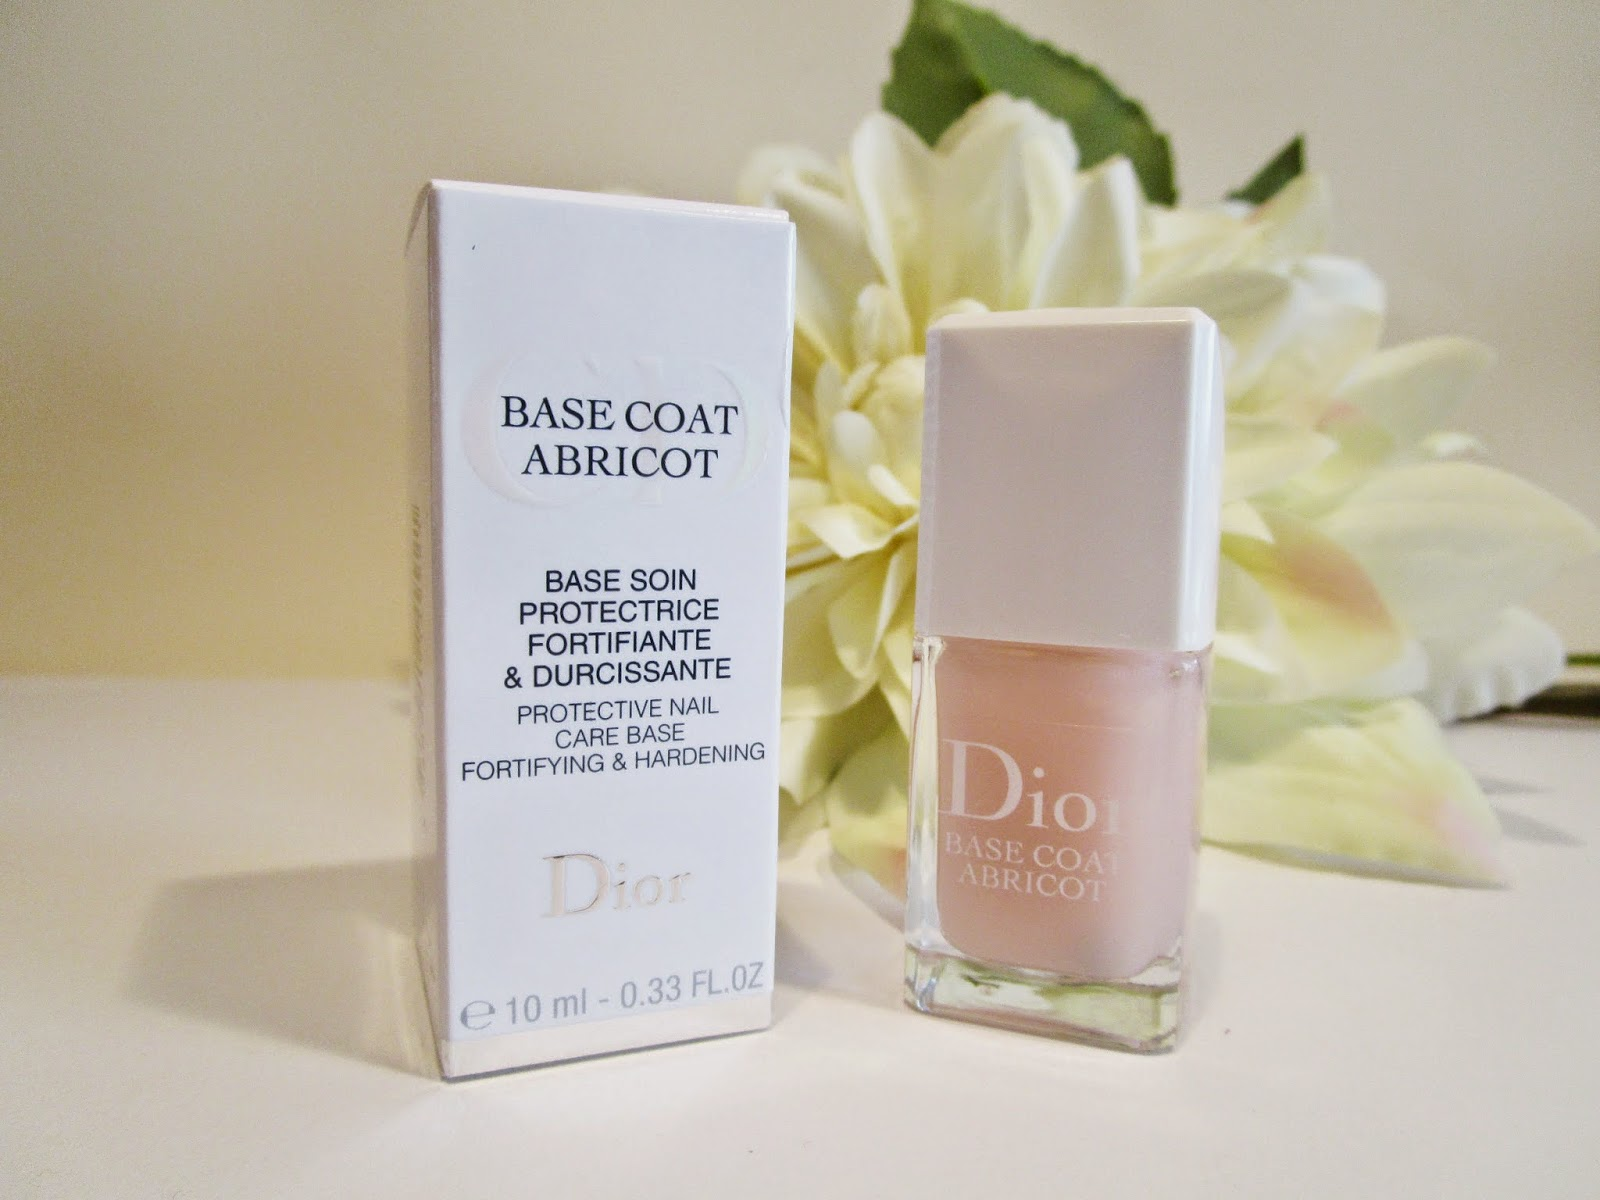 Base Coat Abricot de Christian Dior